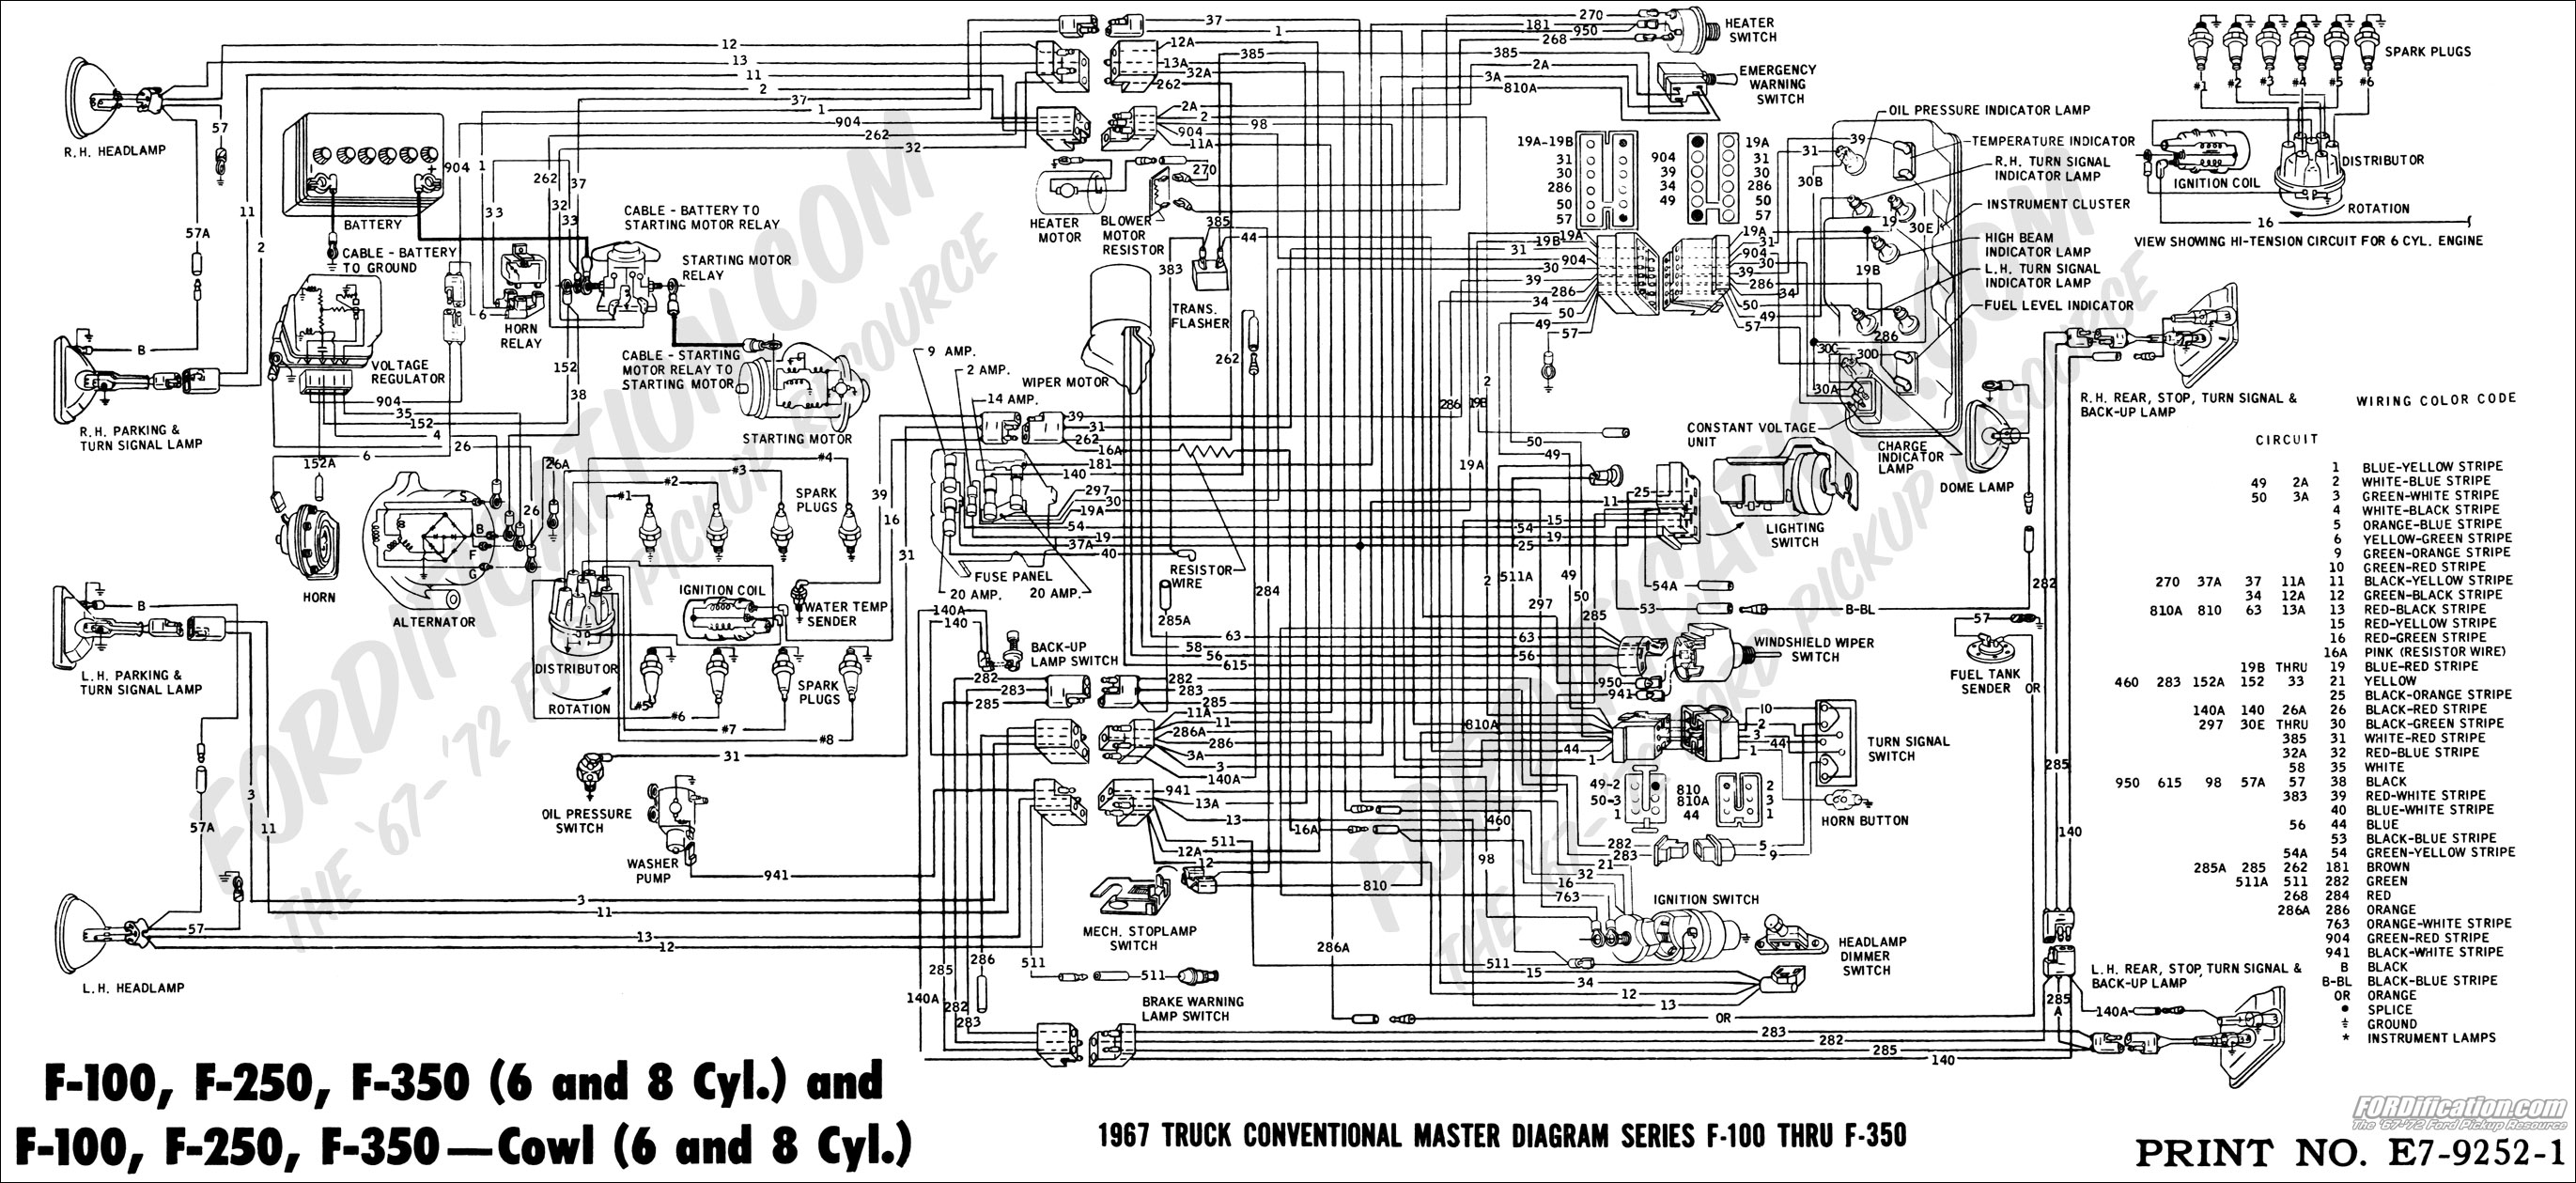 67masterdiagram 1998 ford f150 wiring diagram 1998 jeep grand cherokee wiring 1984 ford f150 wiring harness at edmiracle.co